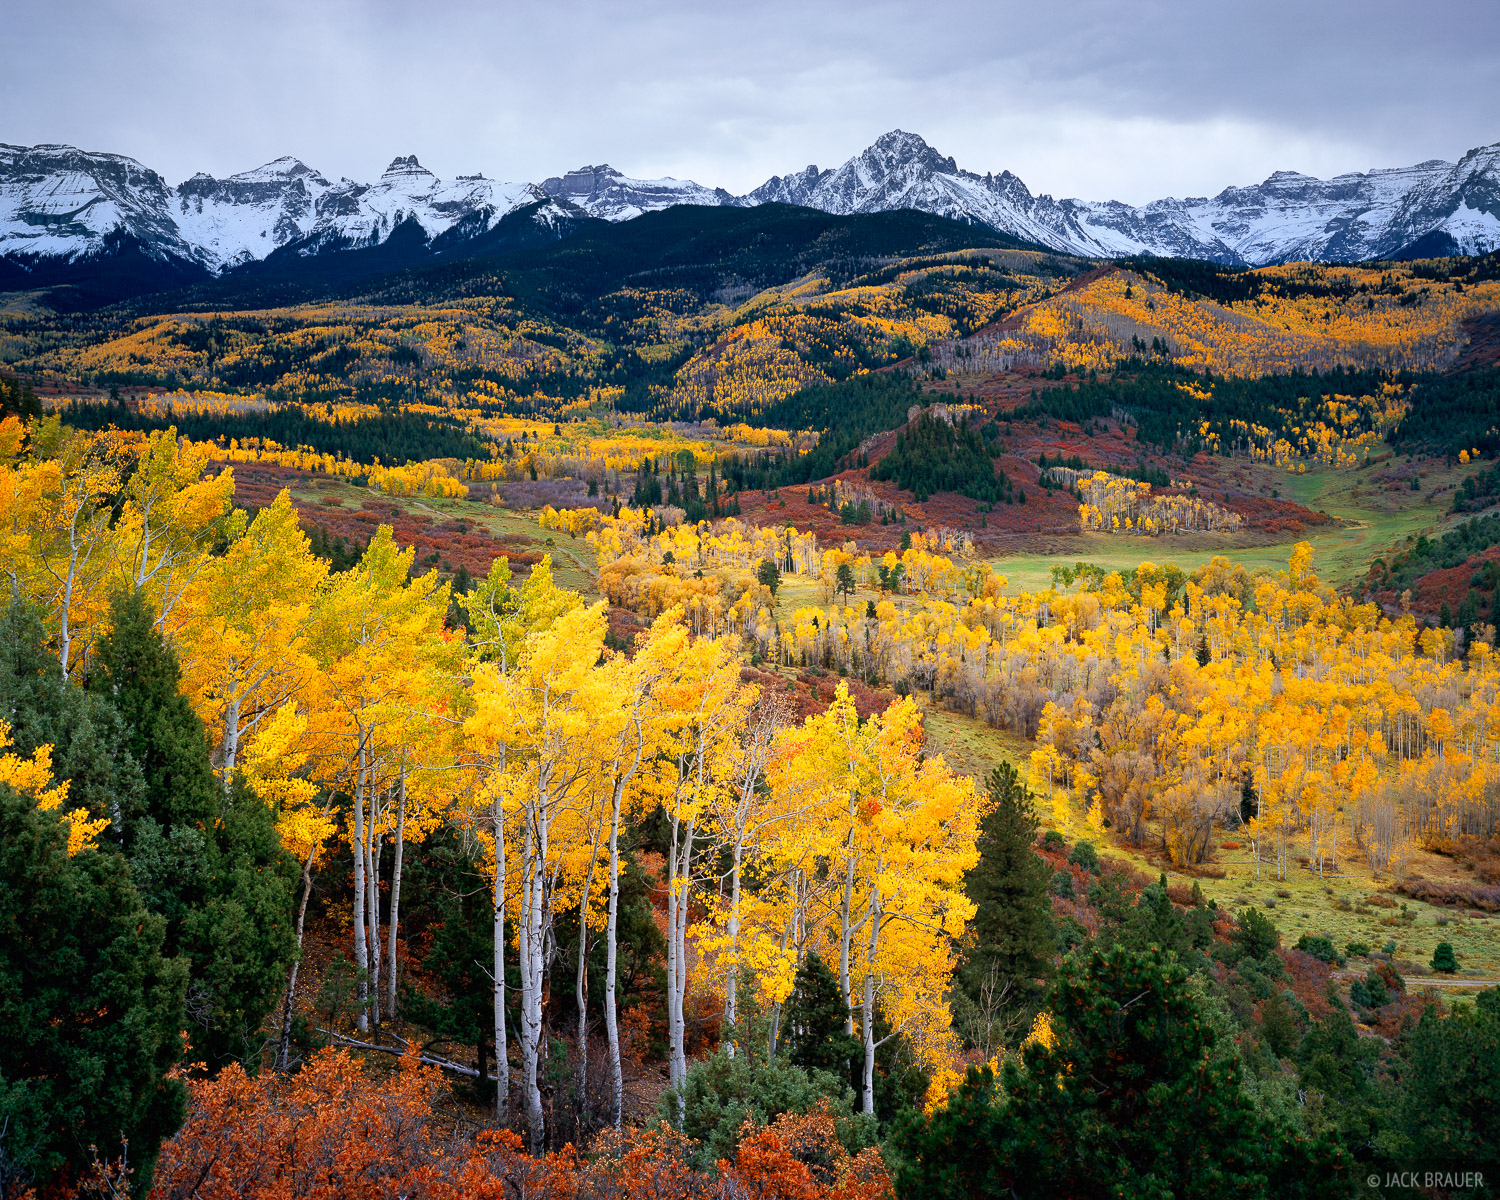 autumn vista of the Sneffels Range and its numerous golden aspen groves, Colorado - October